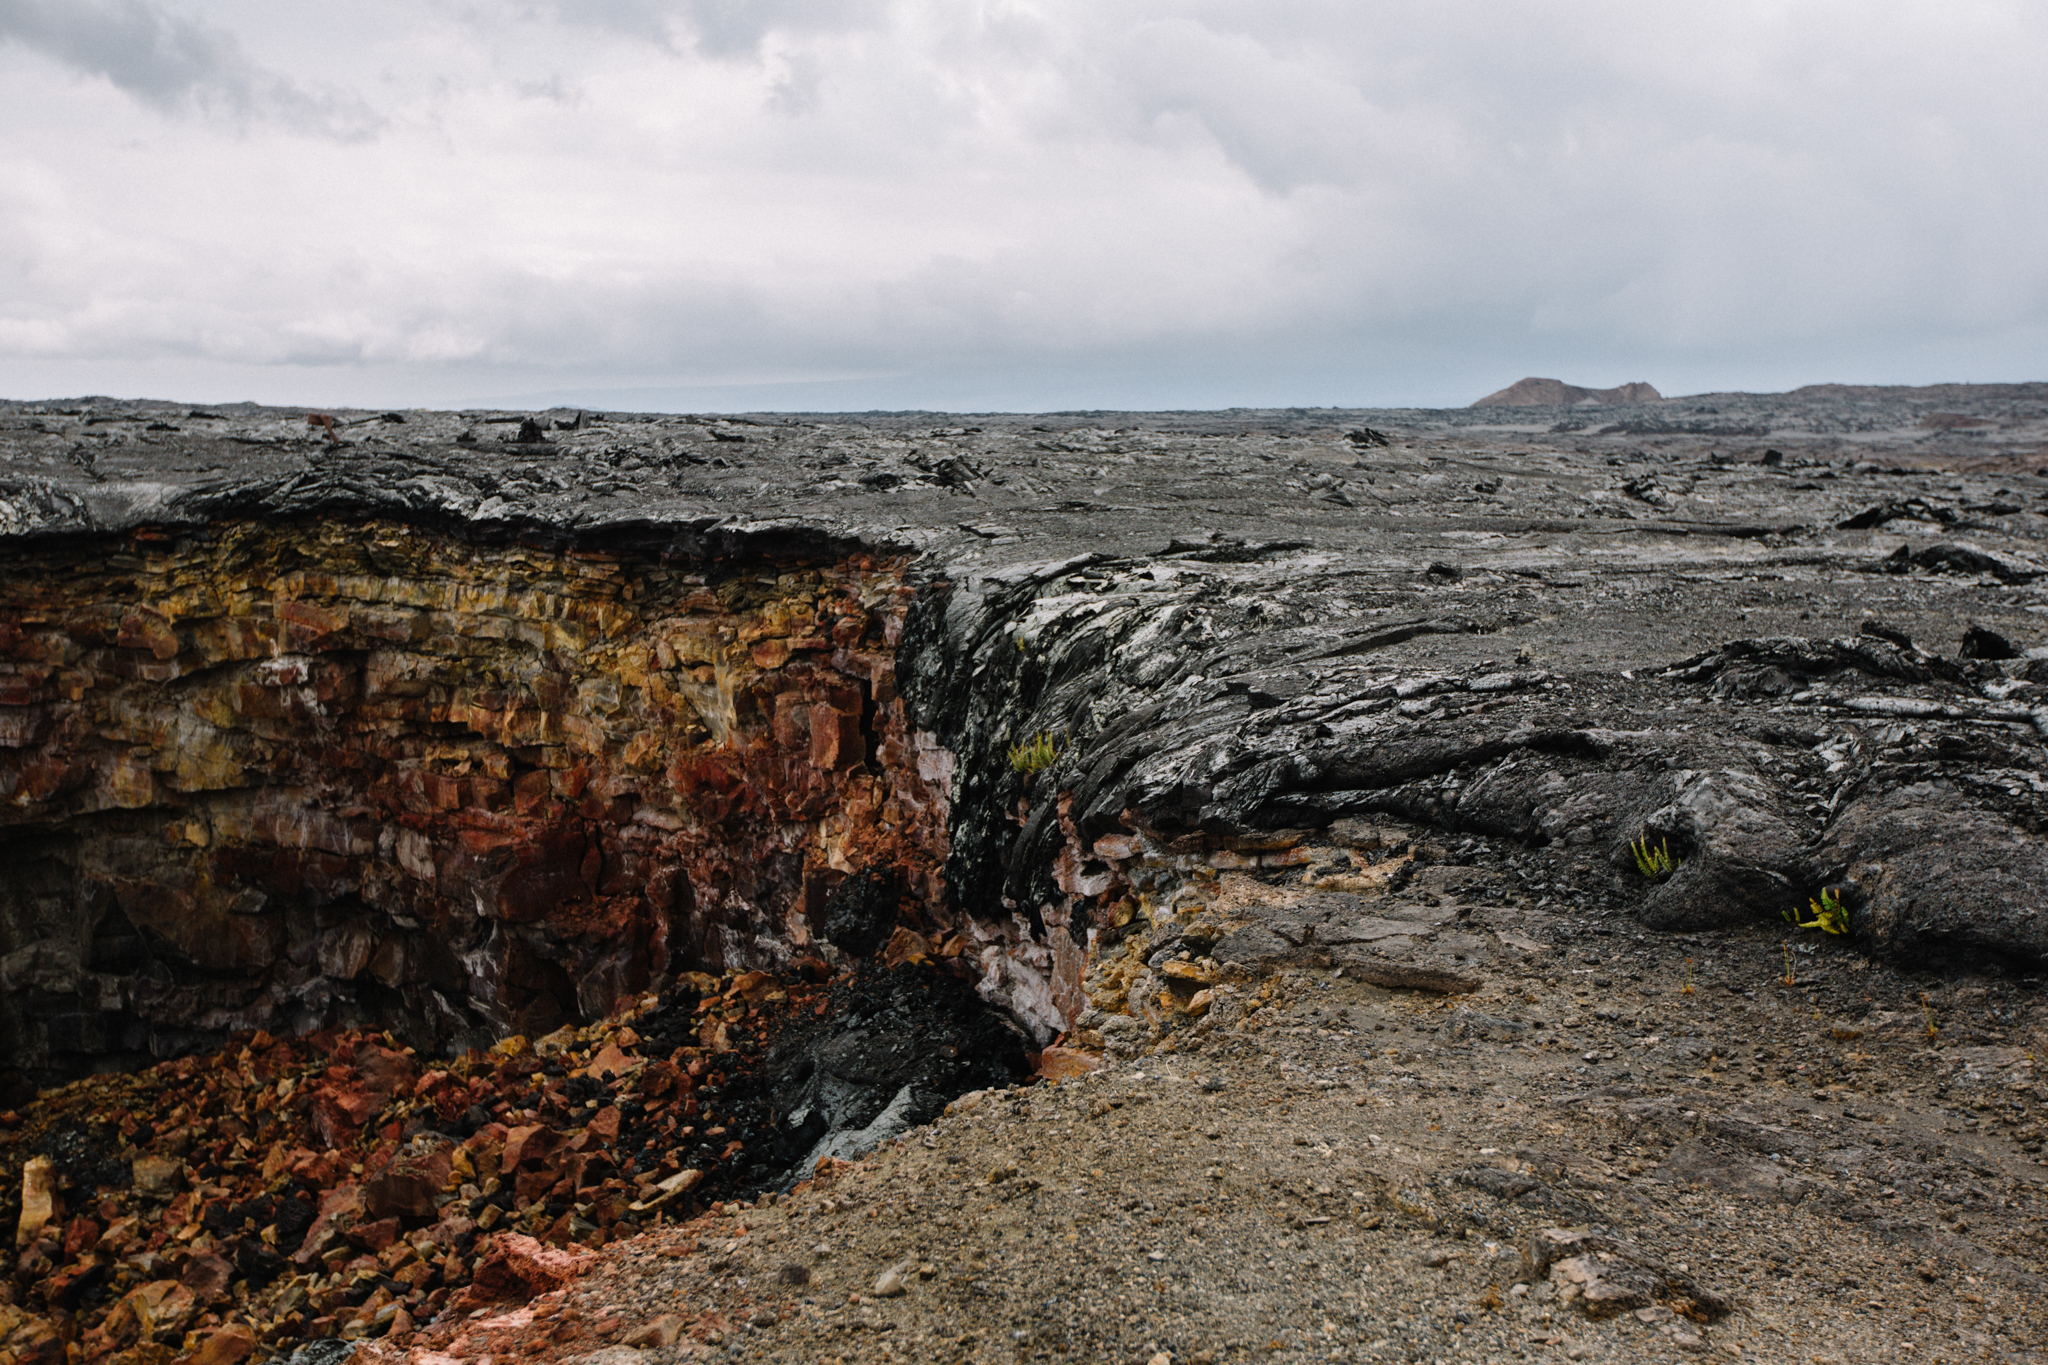 You can see where a lava flow once poured into the chasm.